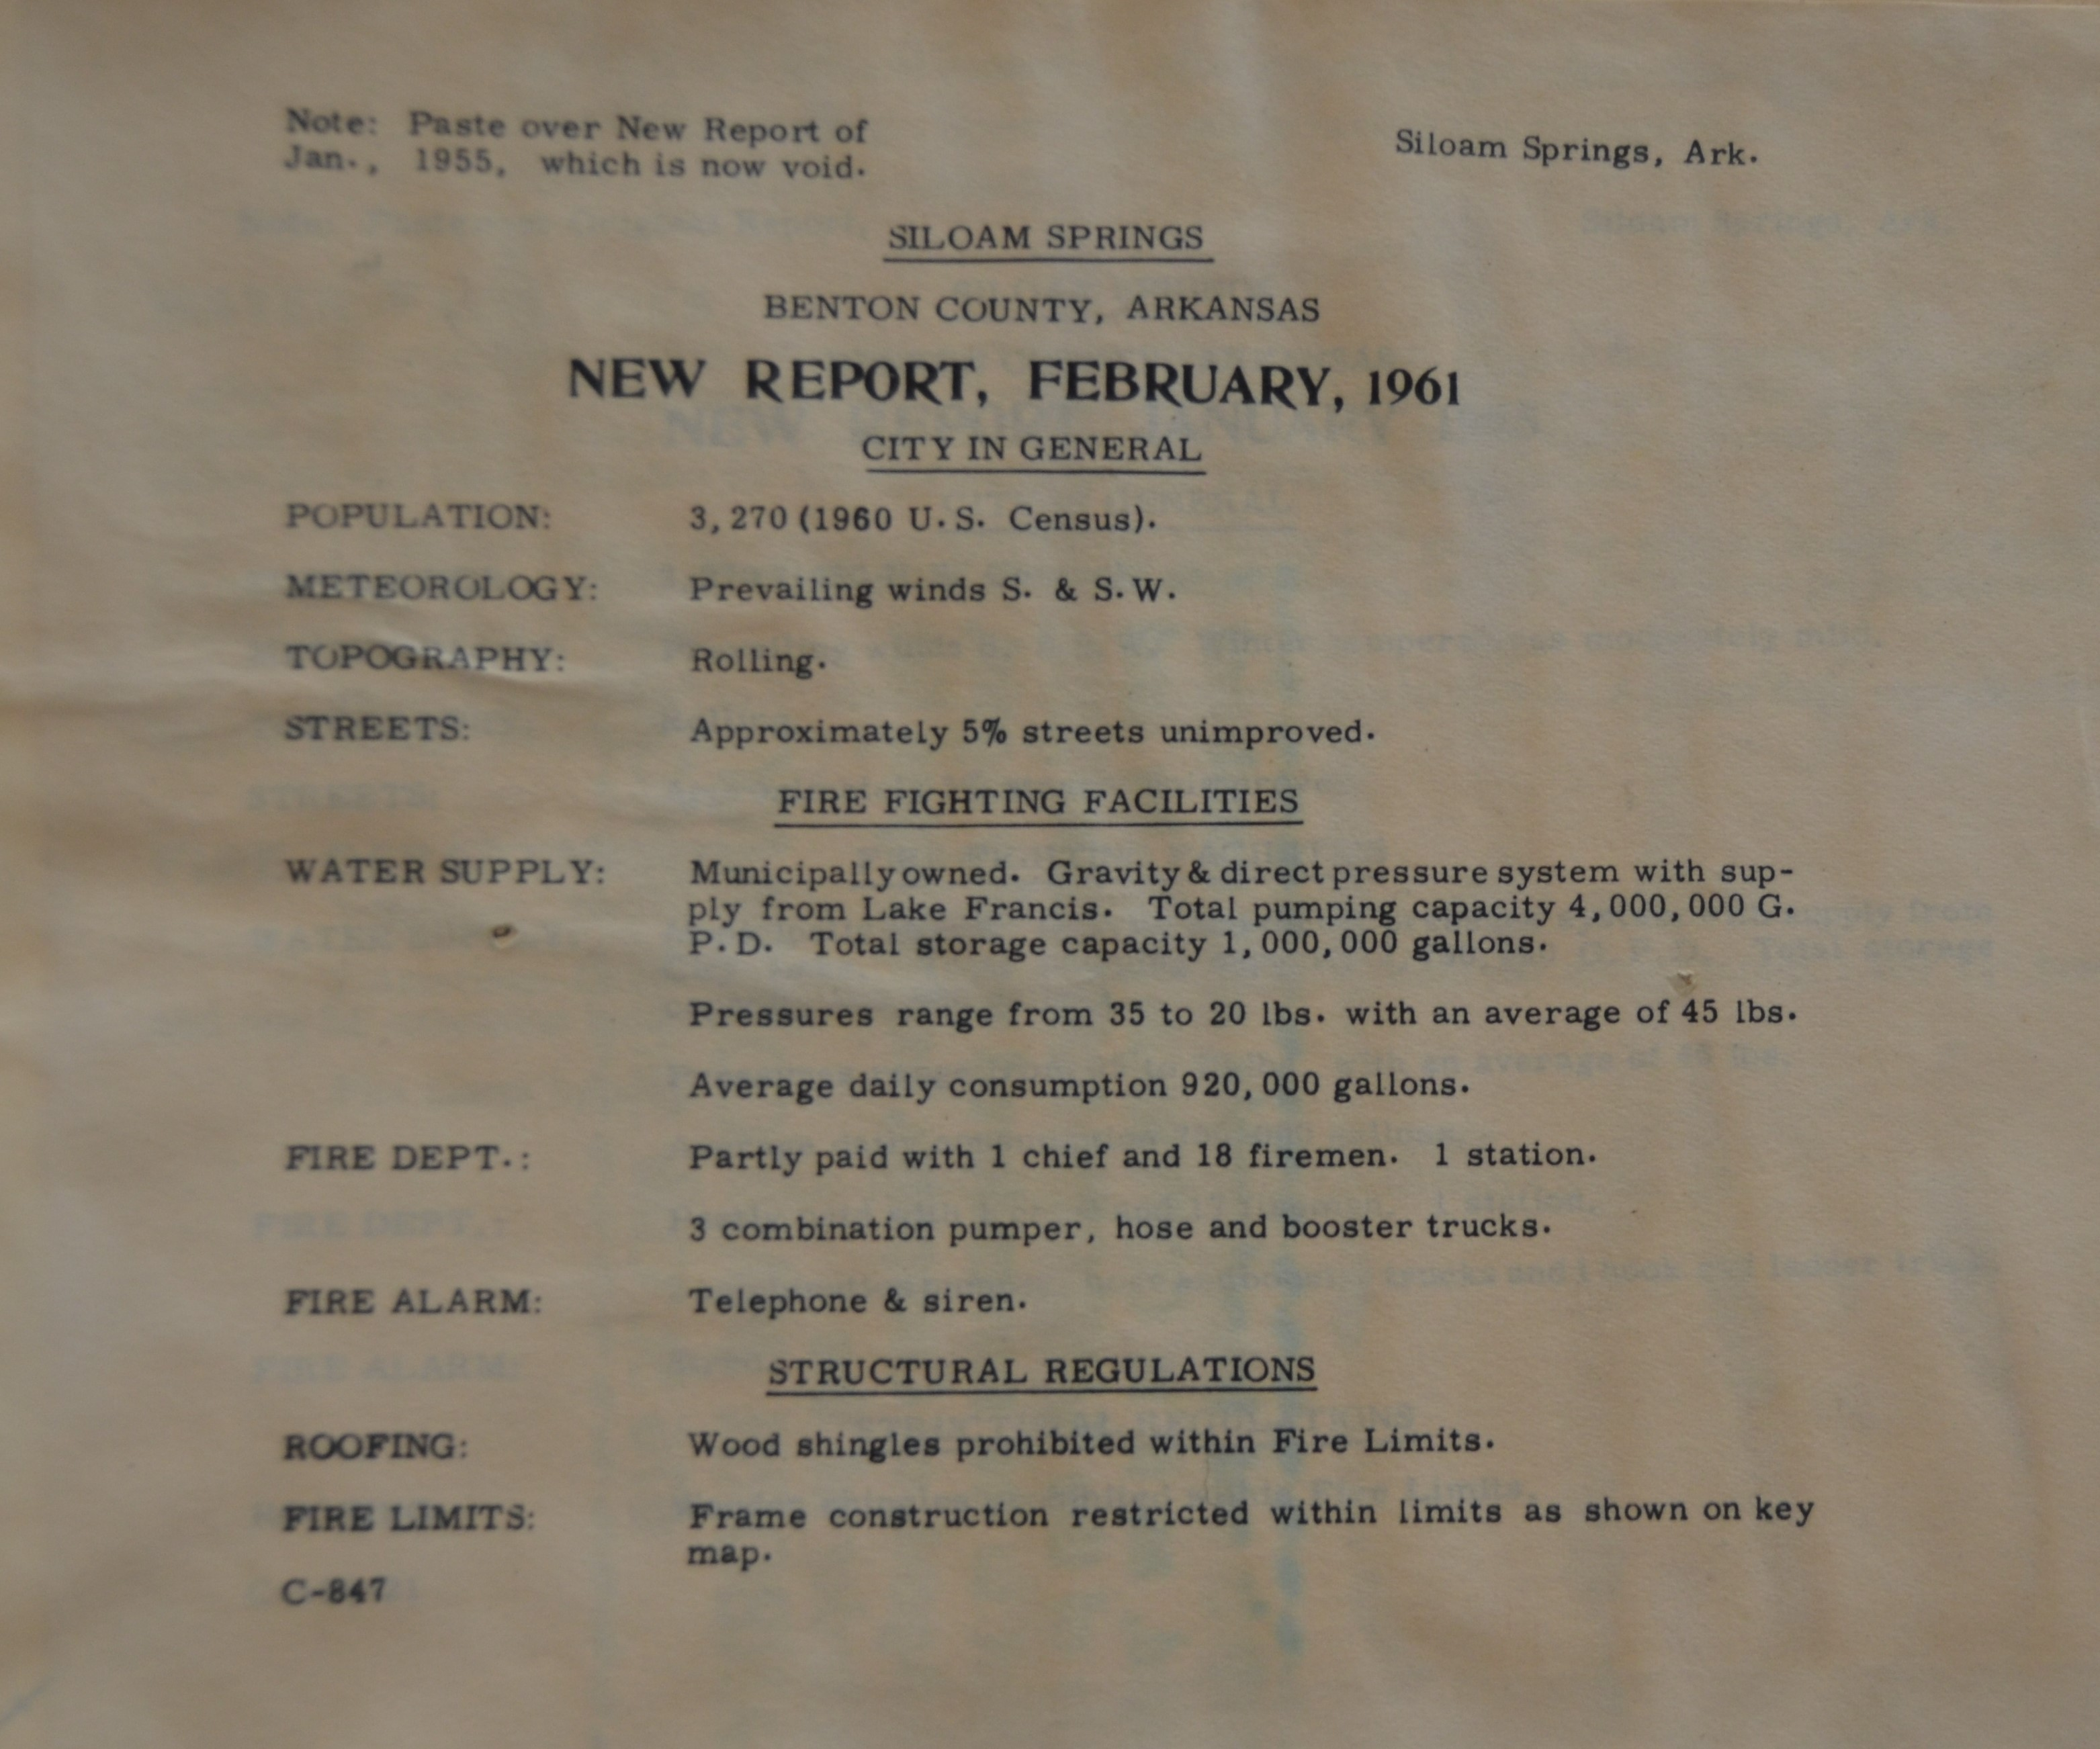 1961 document showing Fire Department consisted of 18 firefighters, 3 pumpers, and and one station,